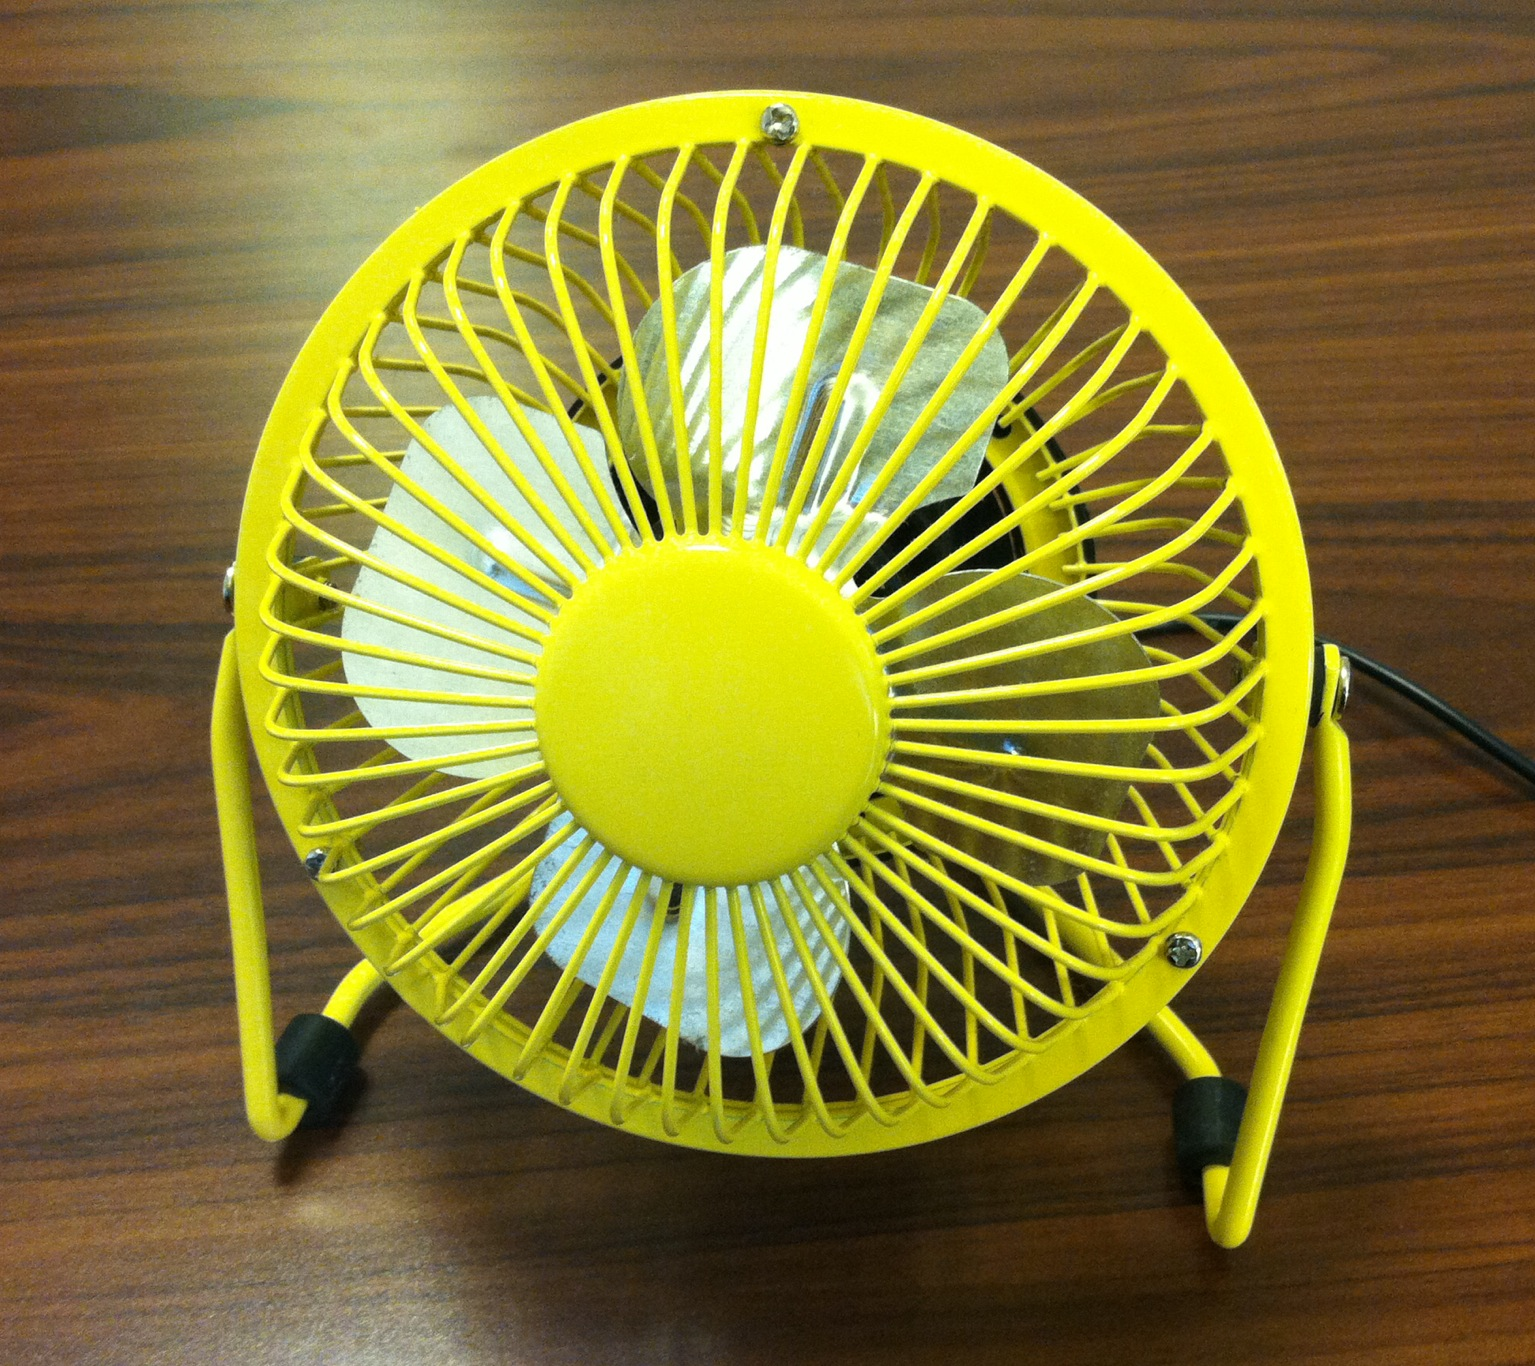 This desk fan is not the kind we're talking about.